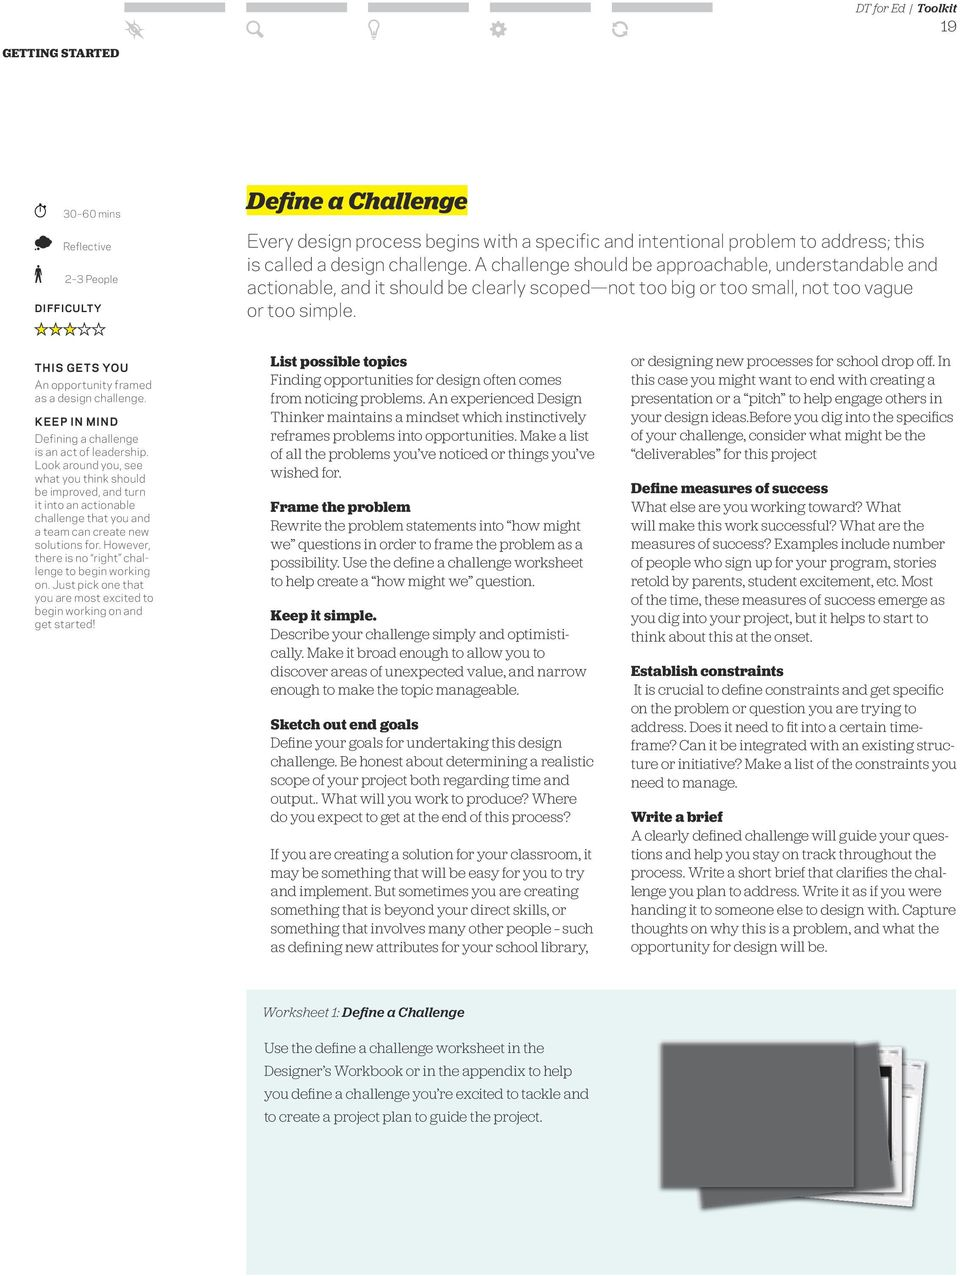 THIS gets you An opportunity framed as a design challenge. Defining a challenge is an act of leadership.